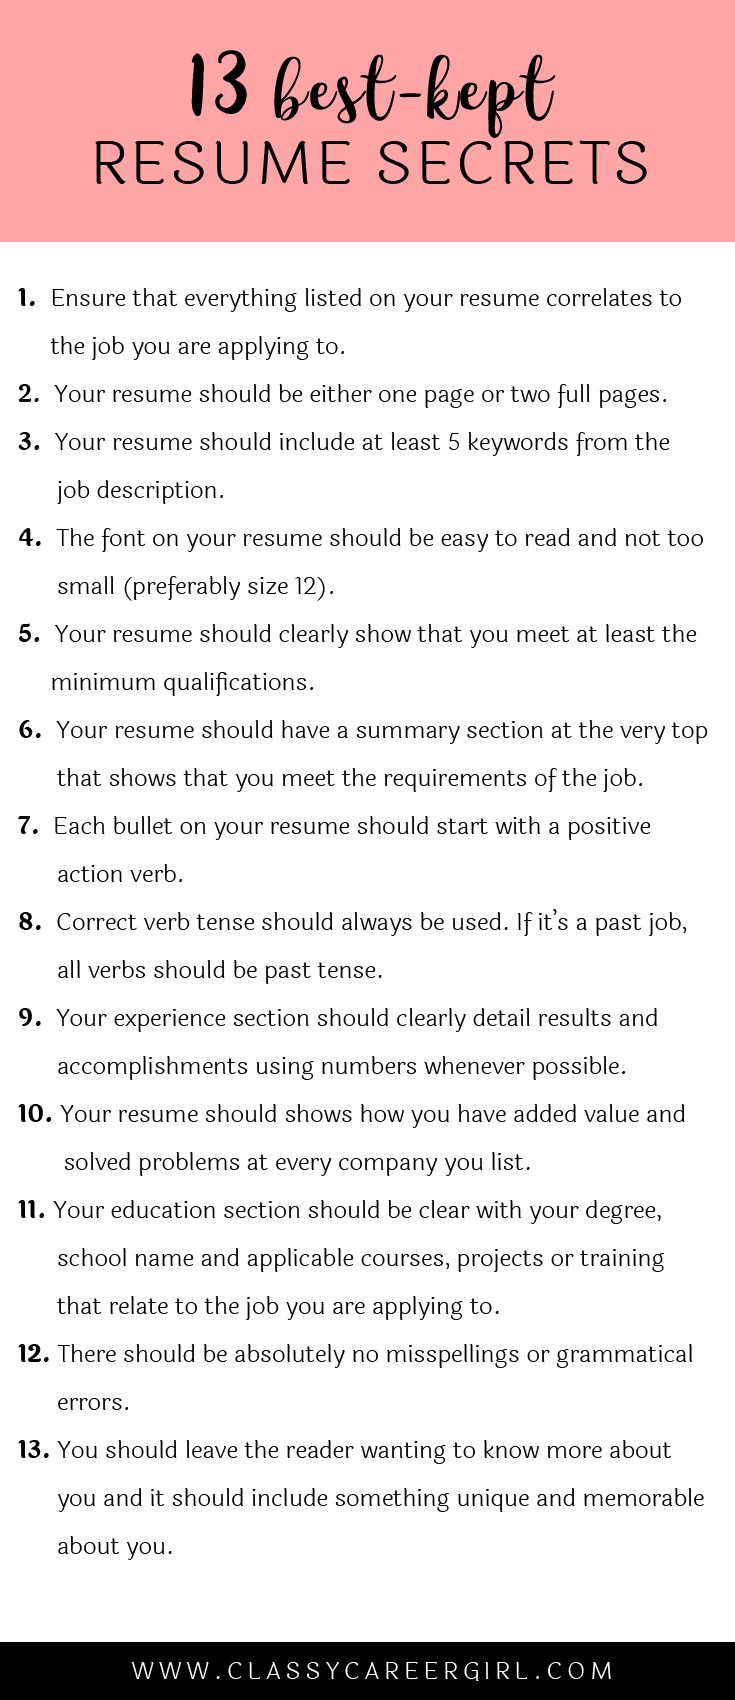 Opposenewapstandardsus  Splendid  Ideas About Resume On Pinterest  Cv Format Resume Cv And  With Glamorous Some Hiring Managers Will Toss Your Resume Out If You Dont Know These  With Comely What Font To Use For A Resume Also Resumes For Teenagers In Addition Criminal Justice Resume Objective And How To Write A Resume Letter As Well As Resume Cv Difference Additionally Free Resume Program From Pinterestcom With Opposenewapstandardsus  Glamorous  Ideas About Resume On Pinterest  Cv Format Resume Cv And  With Comely Some Hiring Managers Will Toss Your Resume Out If You Dont Know These  And Splendid What Font To Use For A Resume Also Resumes For Teenagers In Addition Criminal Justice Resume Objective From Pinterestcom